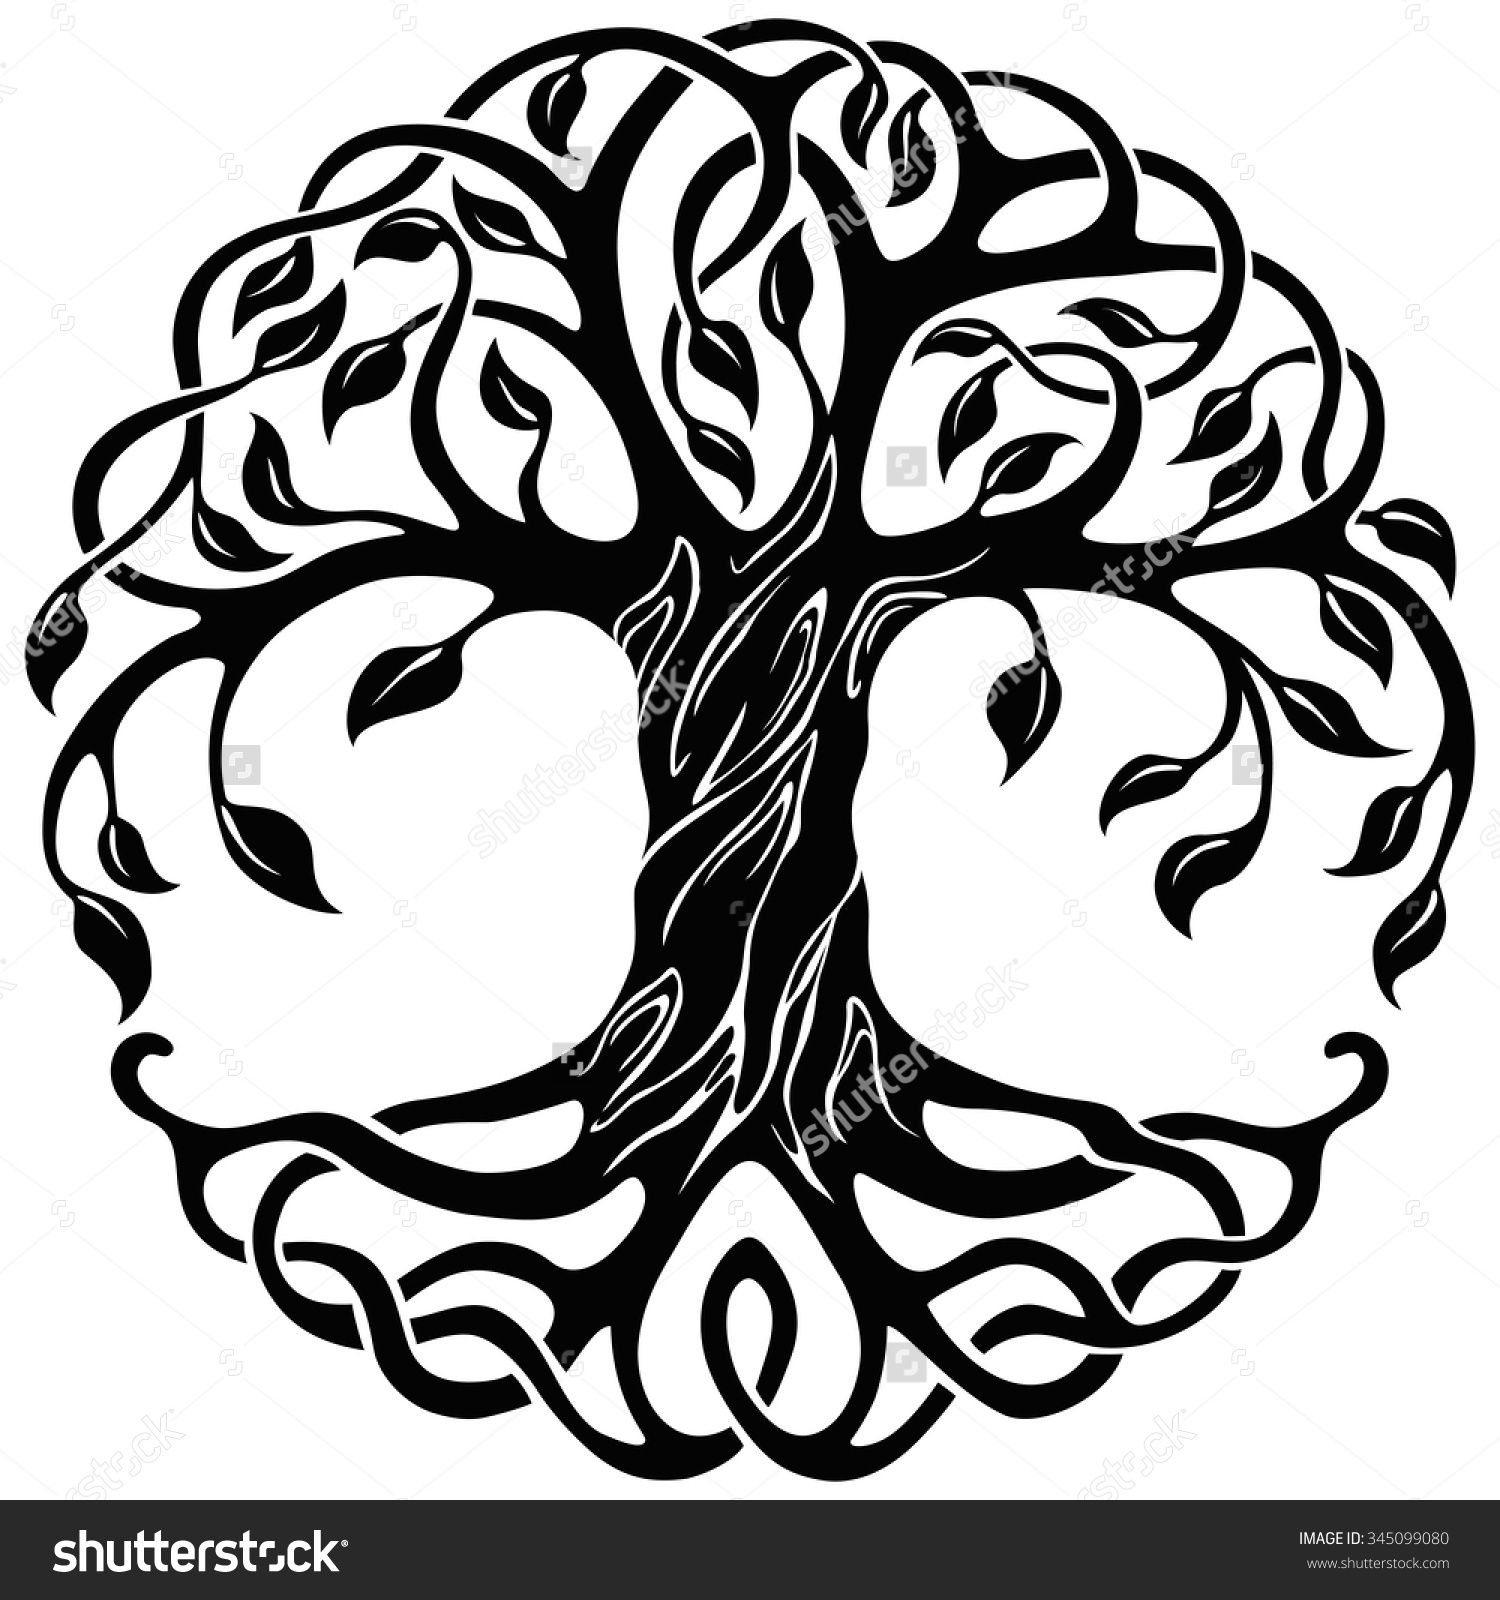 Celtic Tree Of Life Stock Photos, Images, & Pictures ...